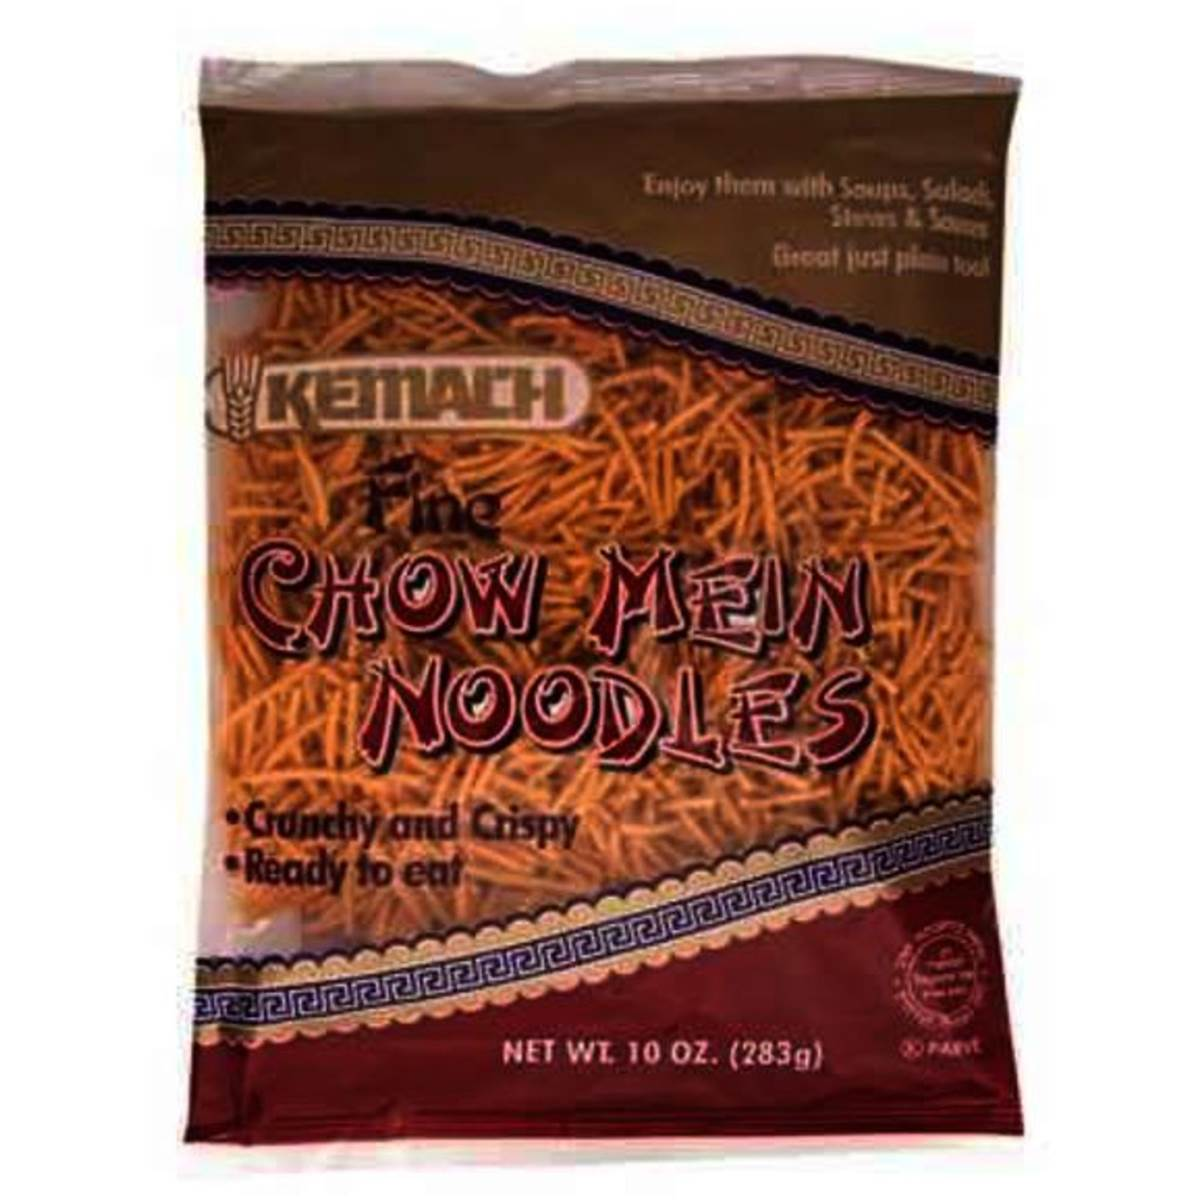 Kemach Chow Mein Noodles